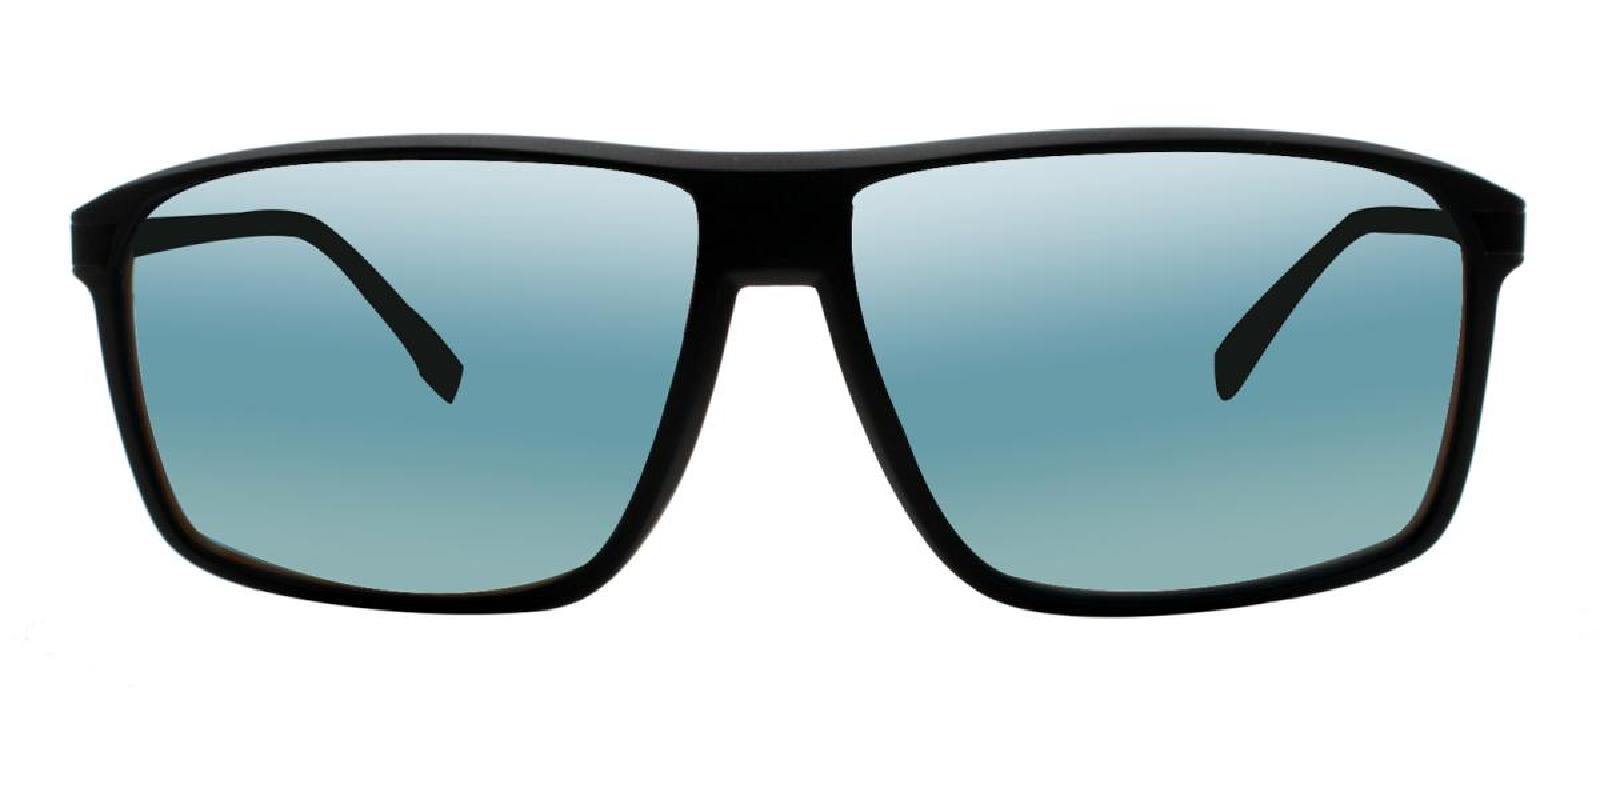 Brighton-Black-Square-TR-Sunglasses-additional2